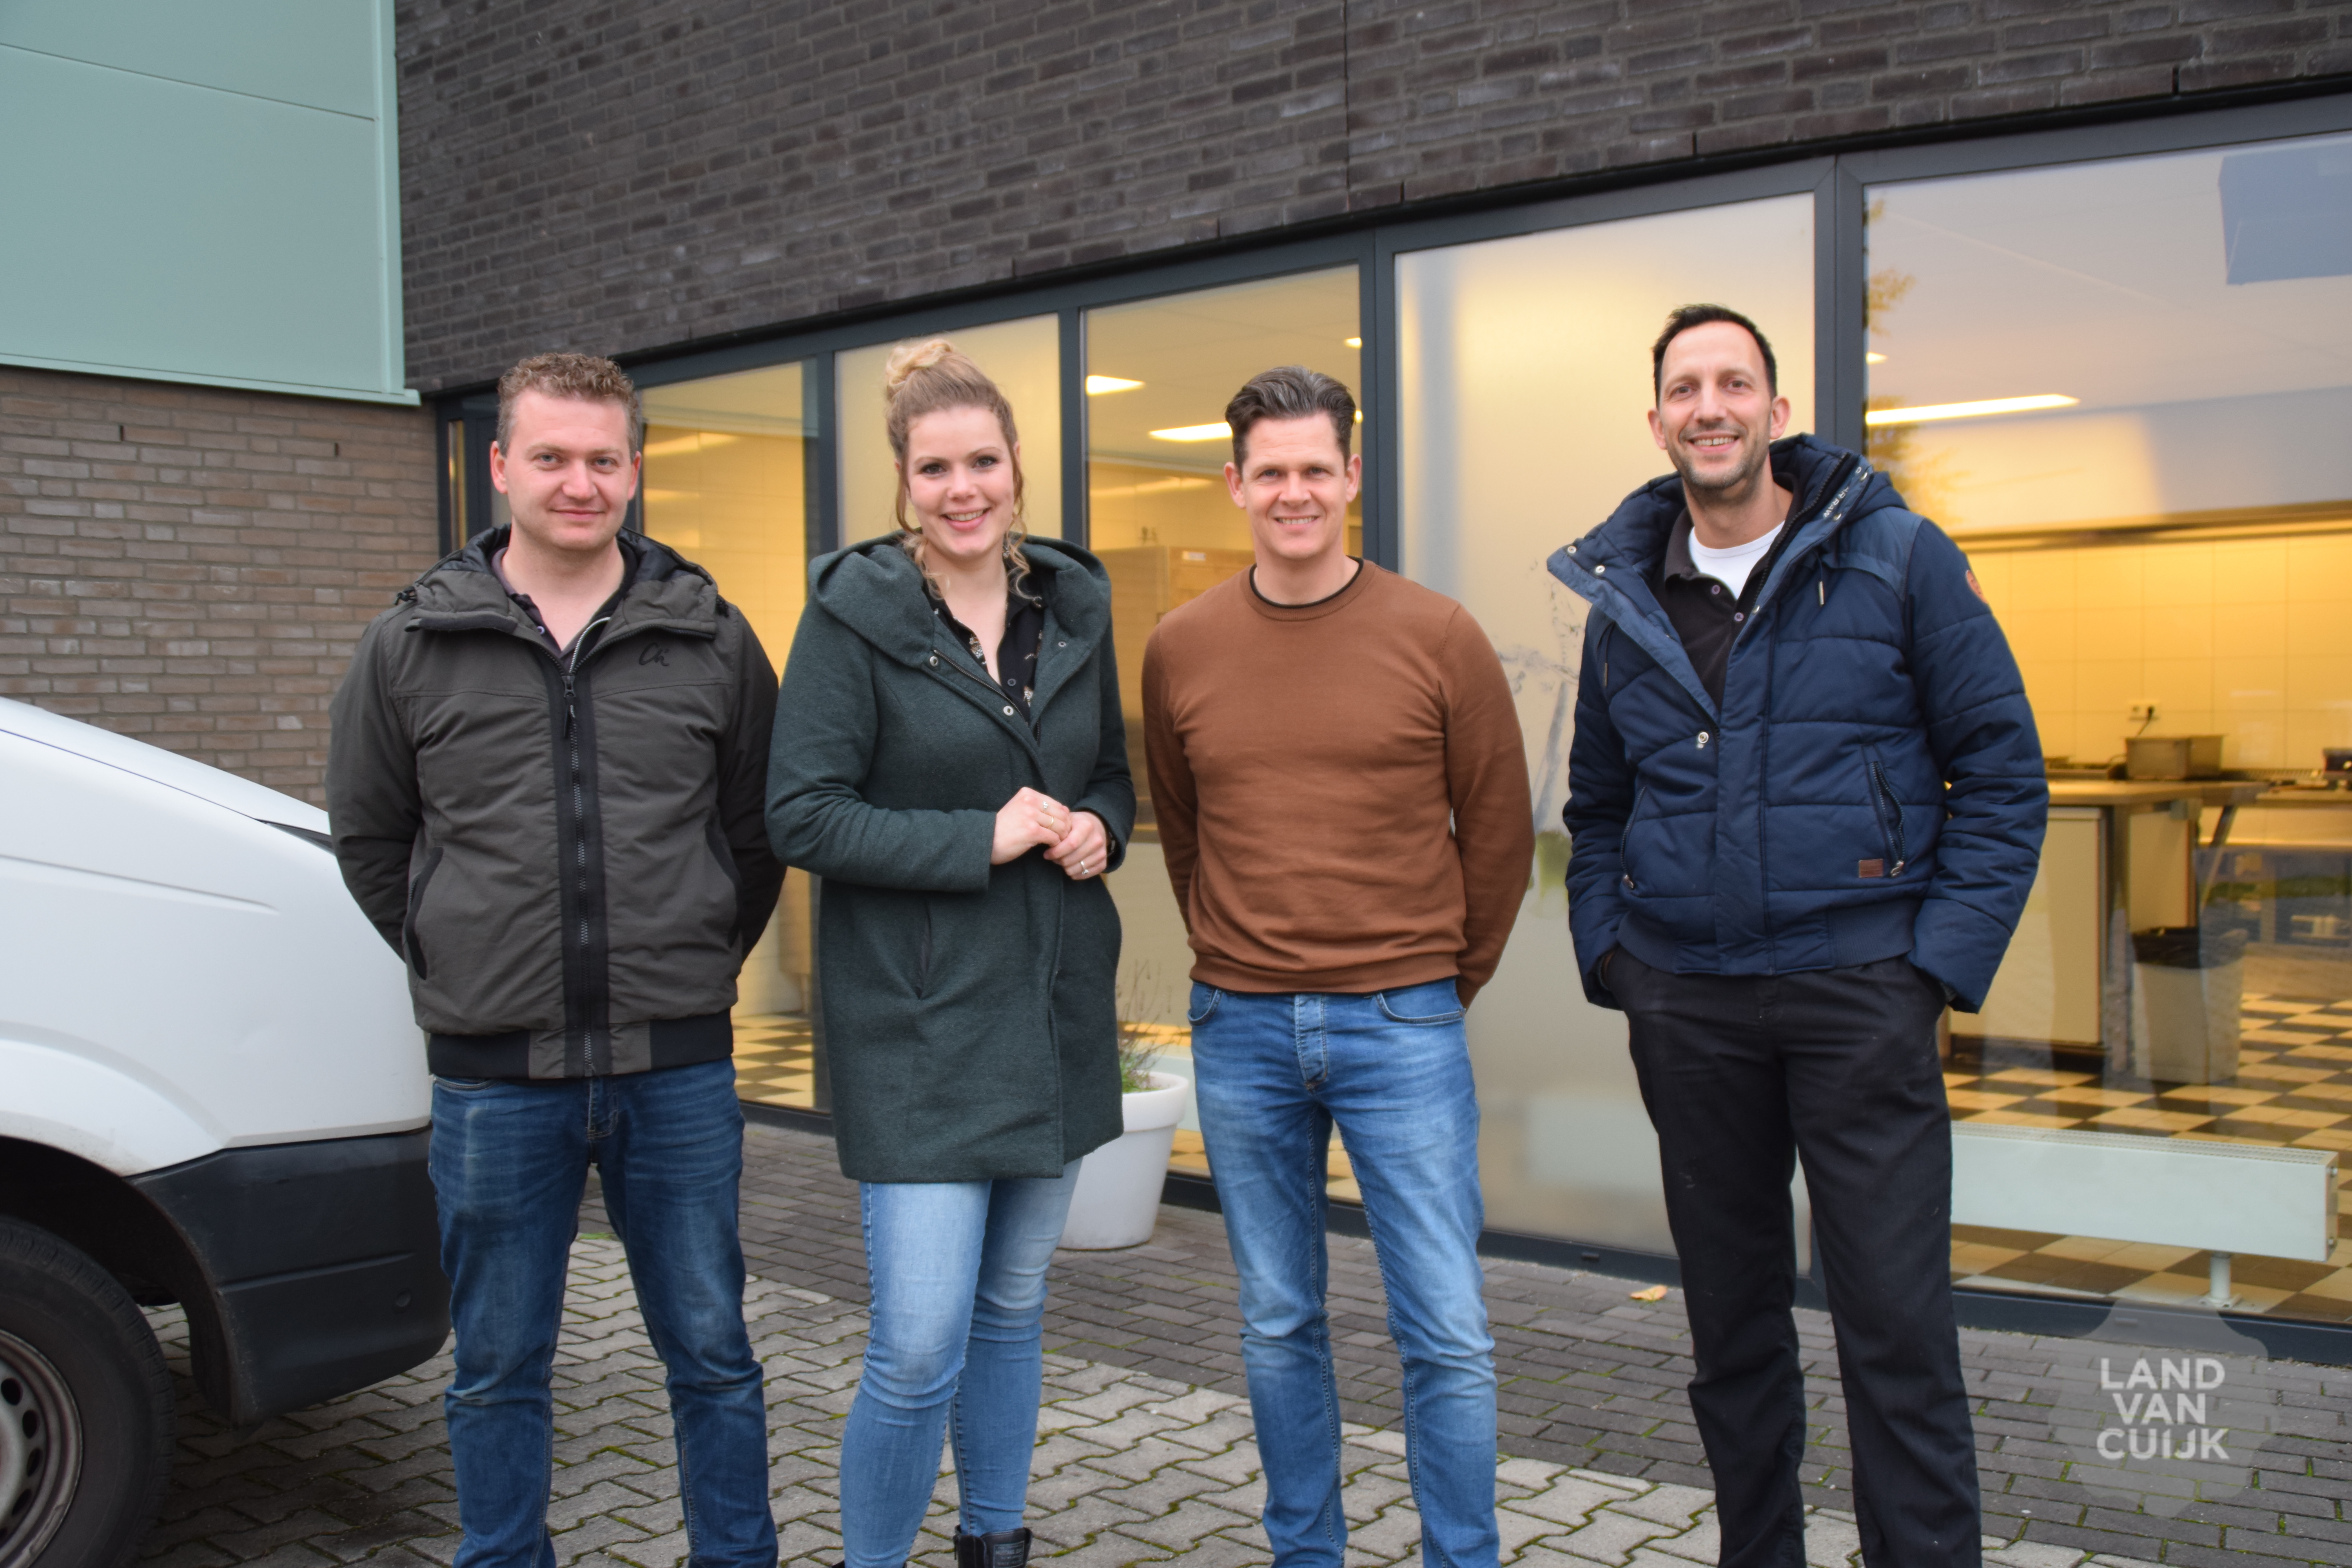 Smaakmakers Mill stoppen met catering - Sansi Party neemt bedrijfspand over